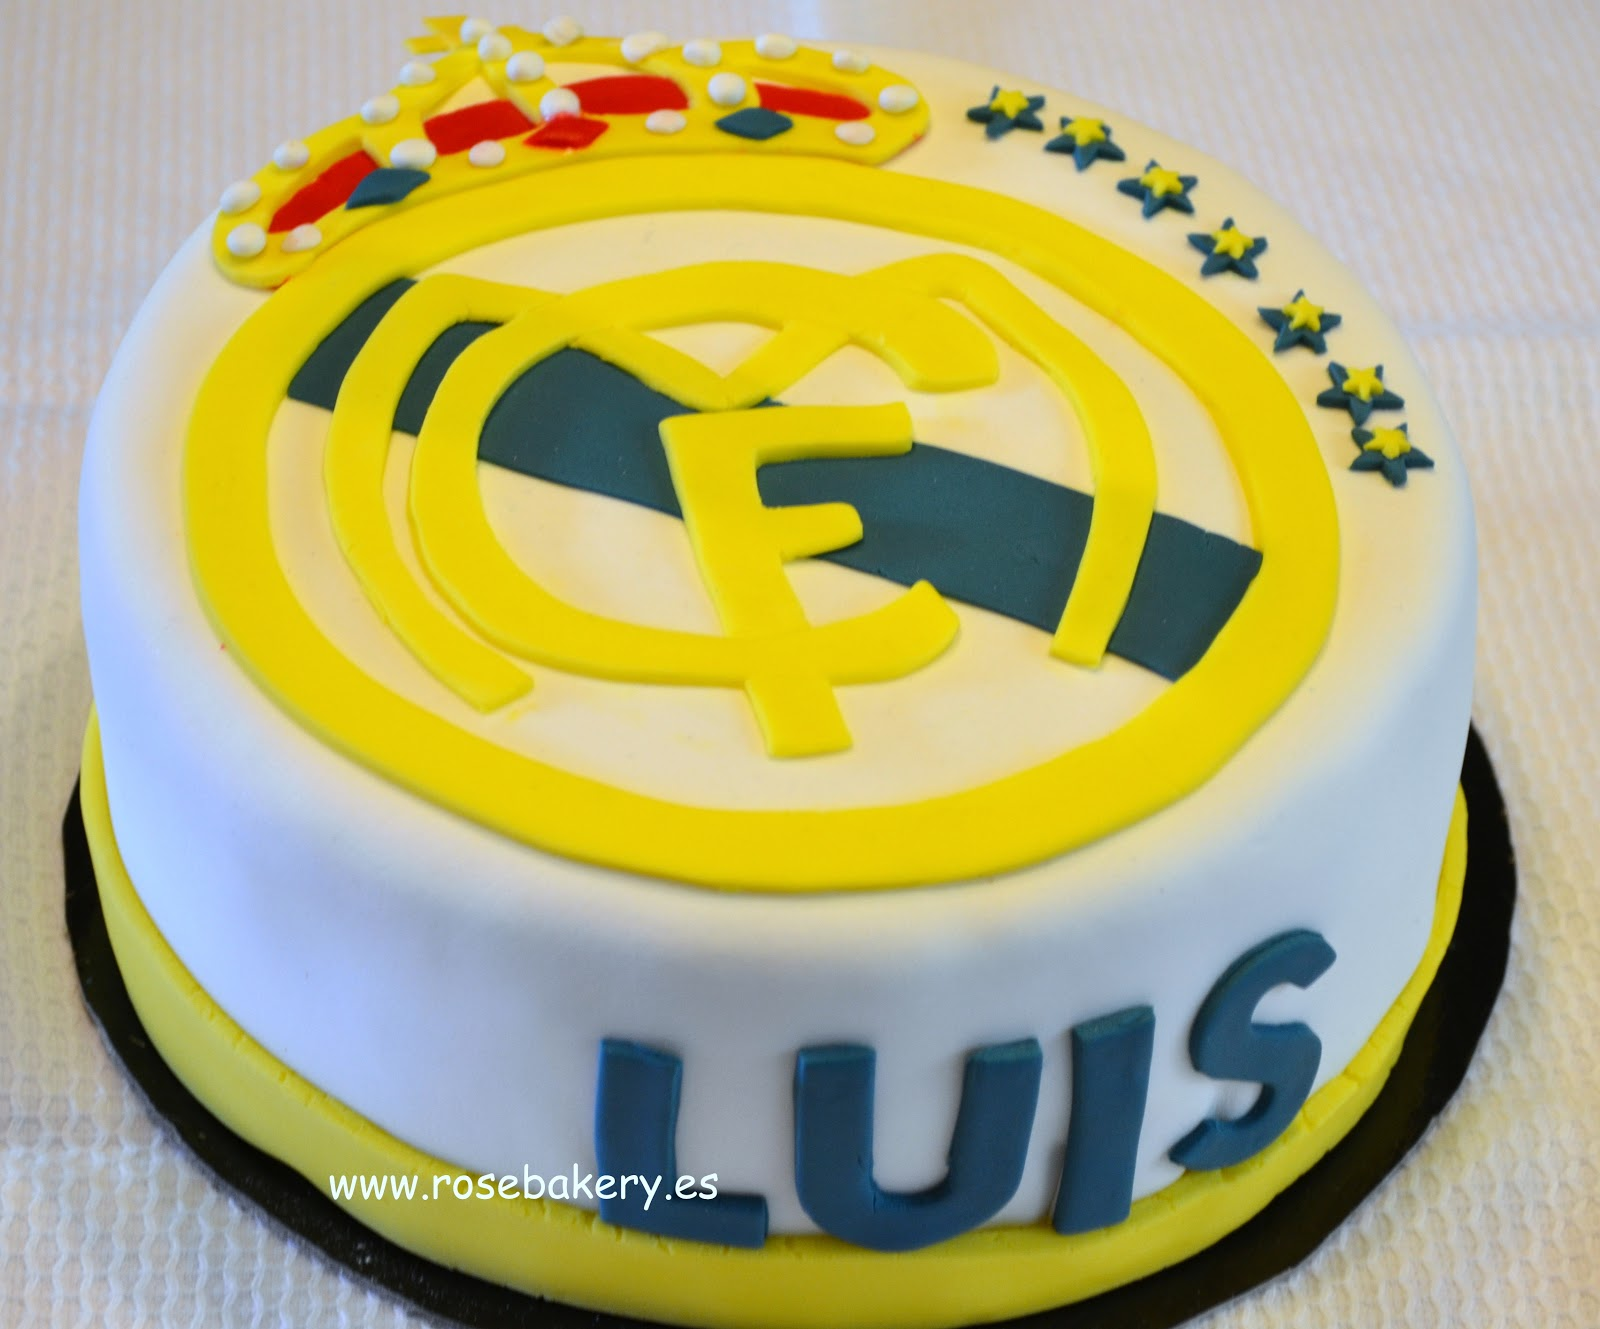 Rose bakery tarta escudo del real madrid for Correo real madrid